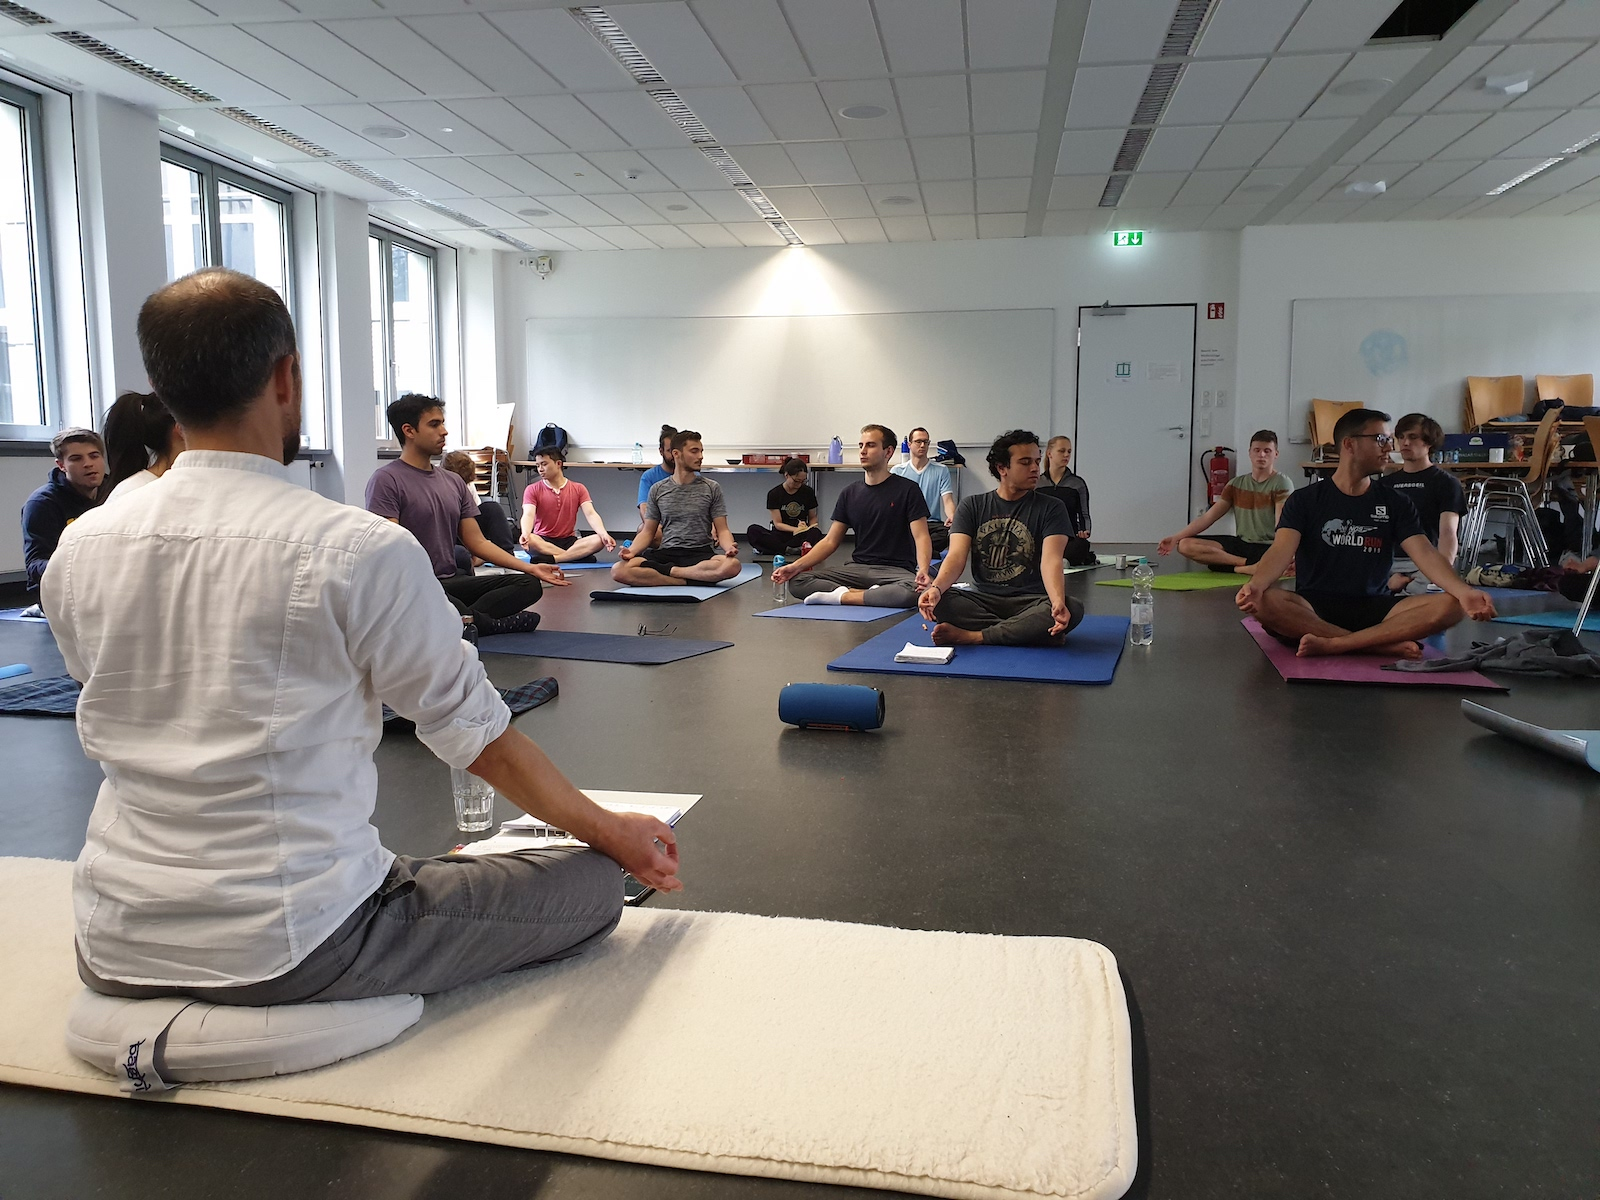 Students and the instructor meditating